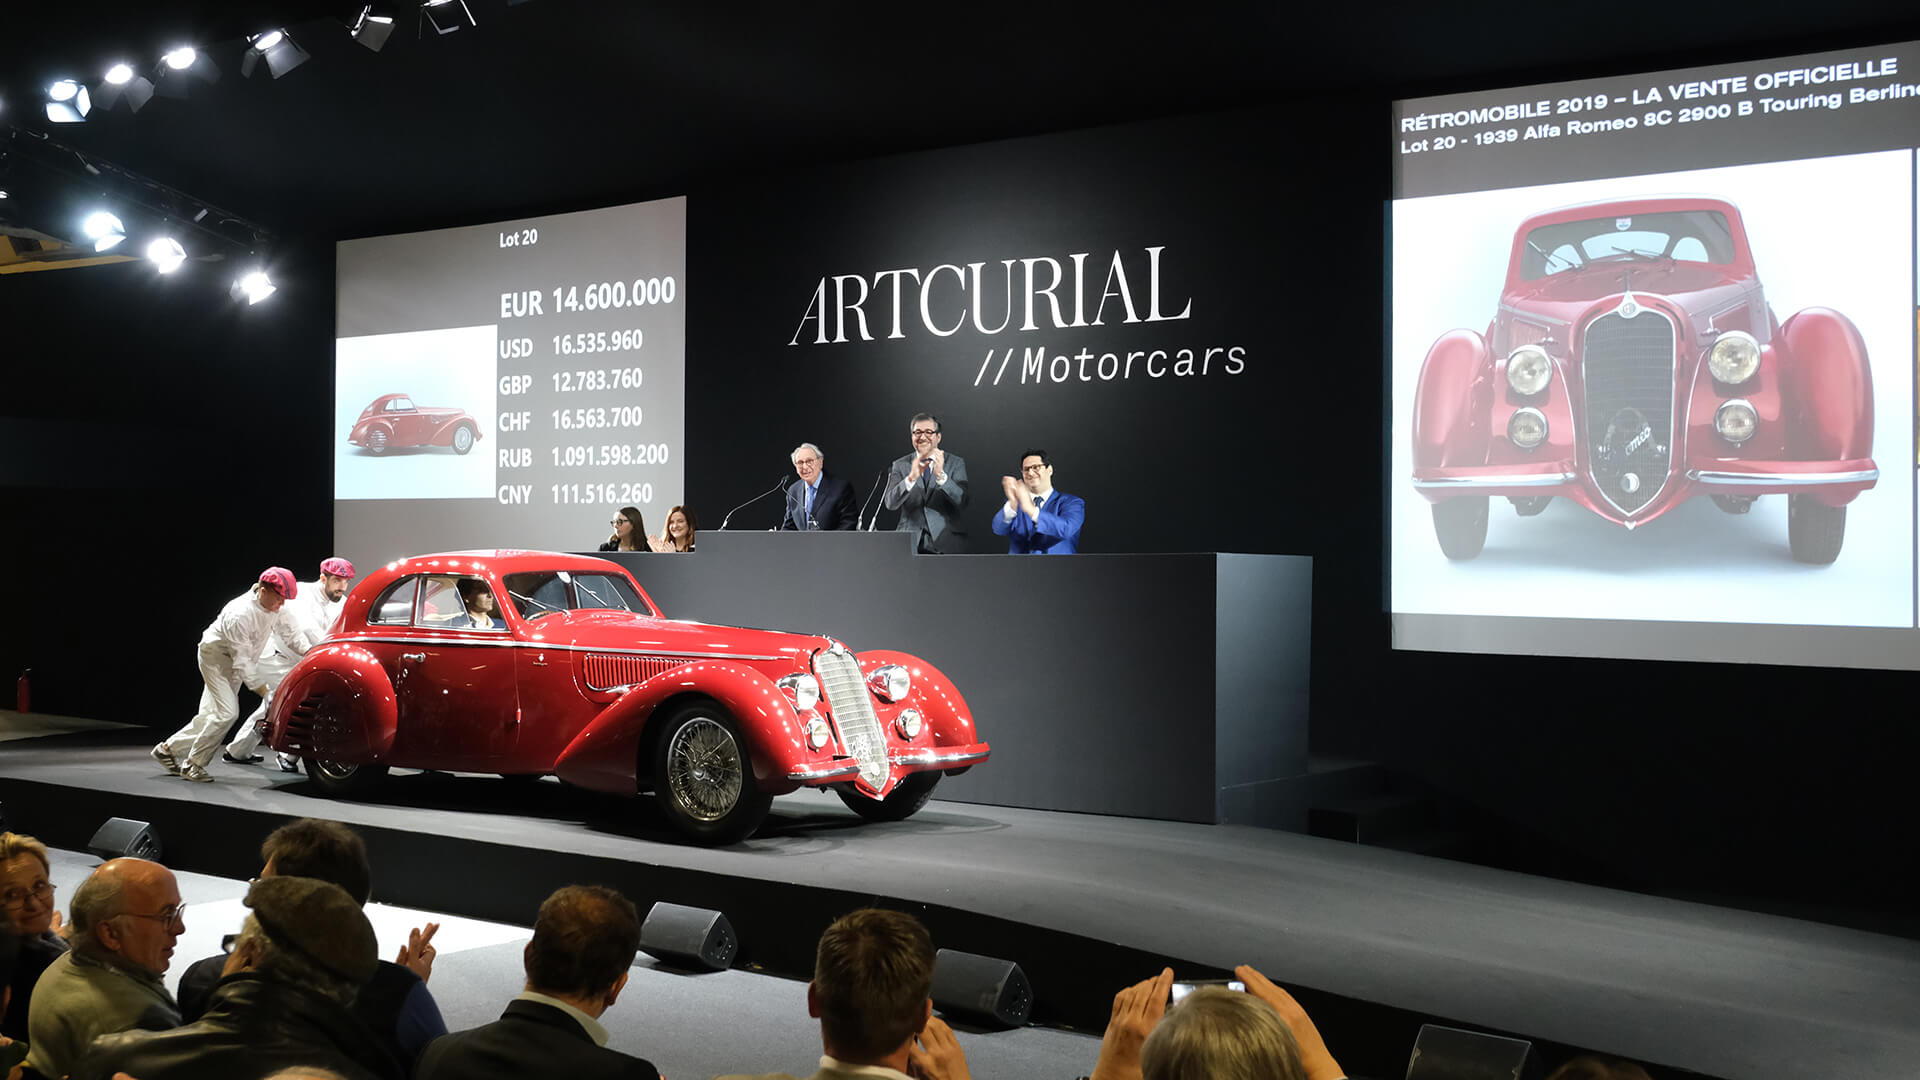 Fortune favours the brave – Artcurial sells the Alfa Romeo 8C 2.9 for €16.4m